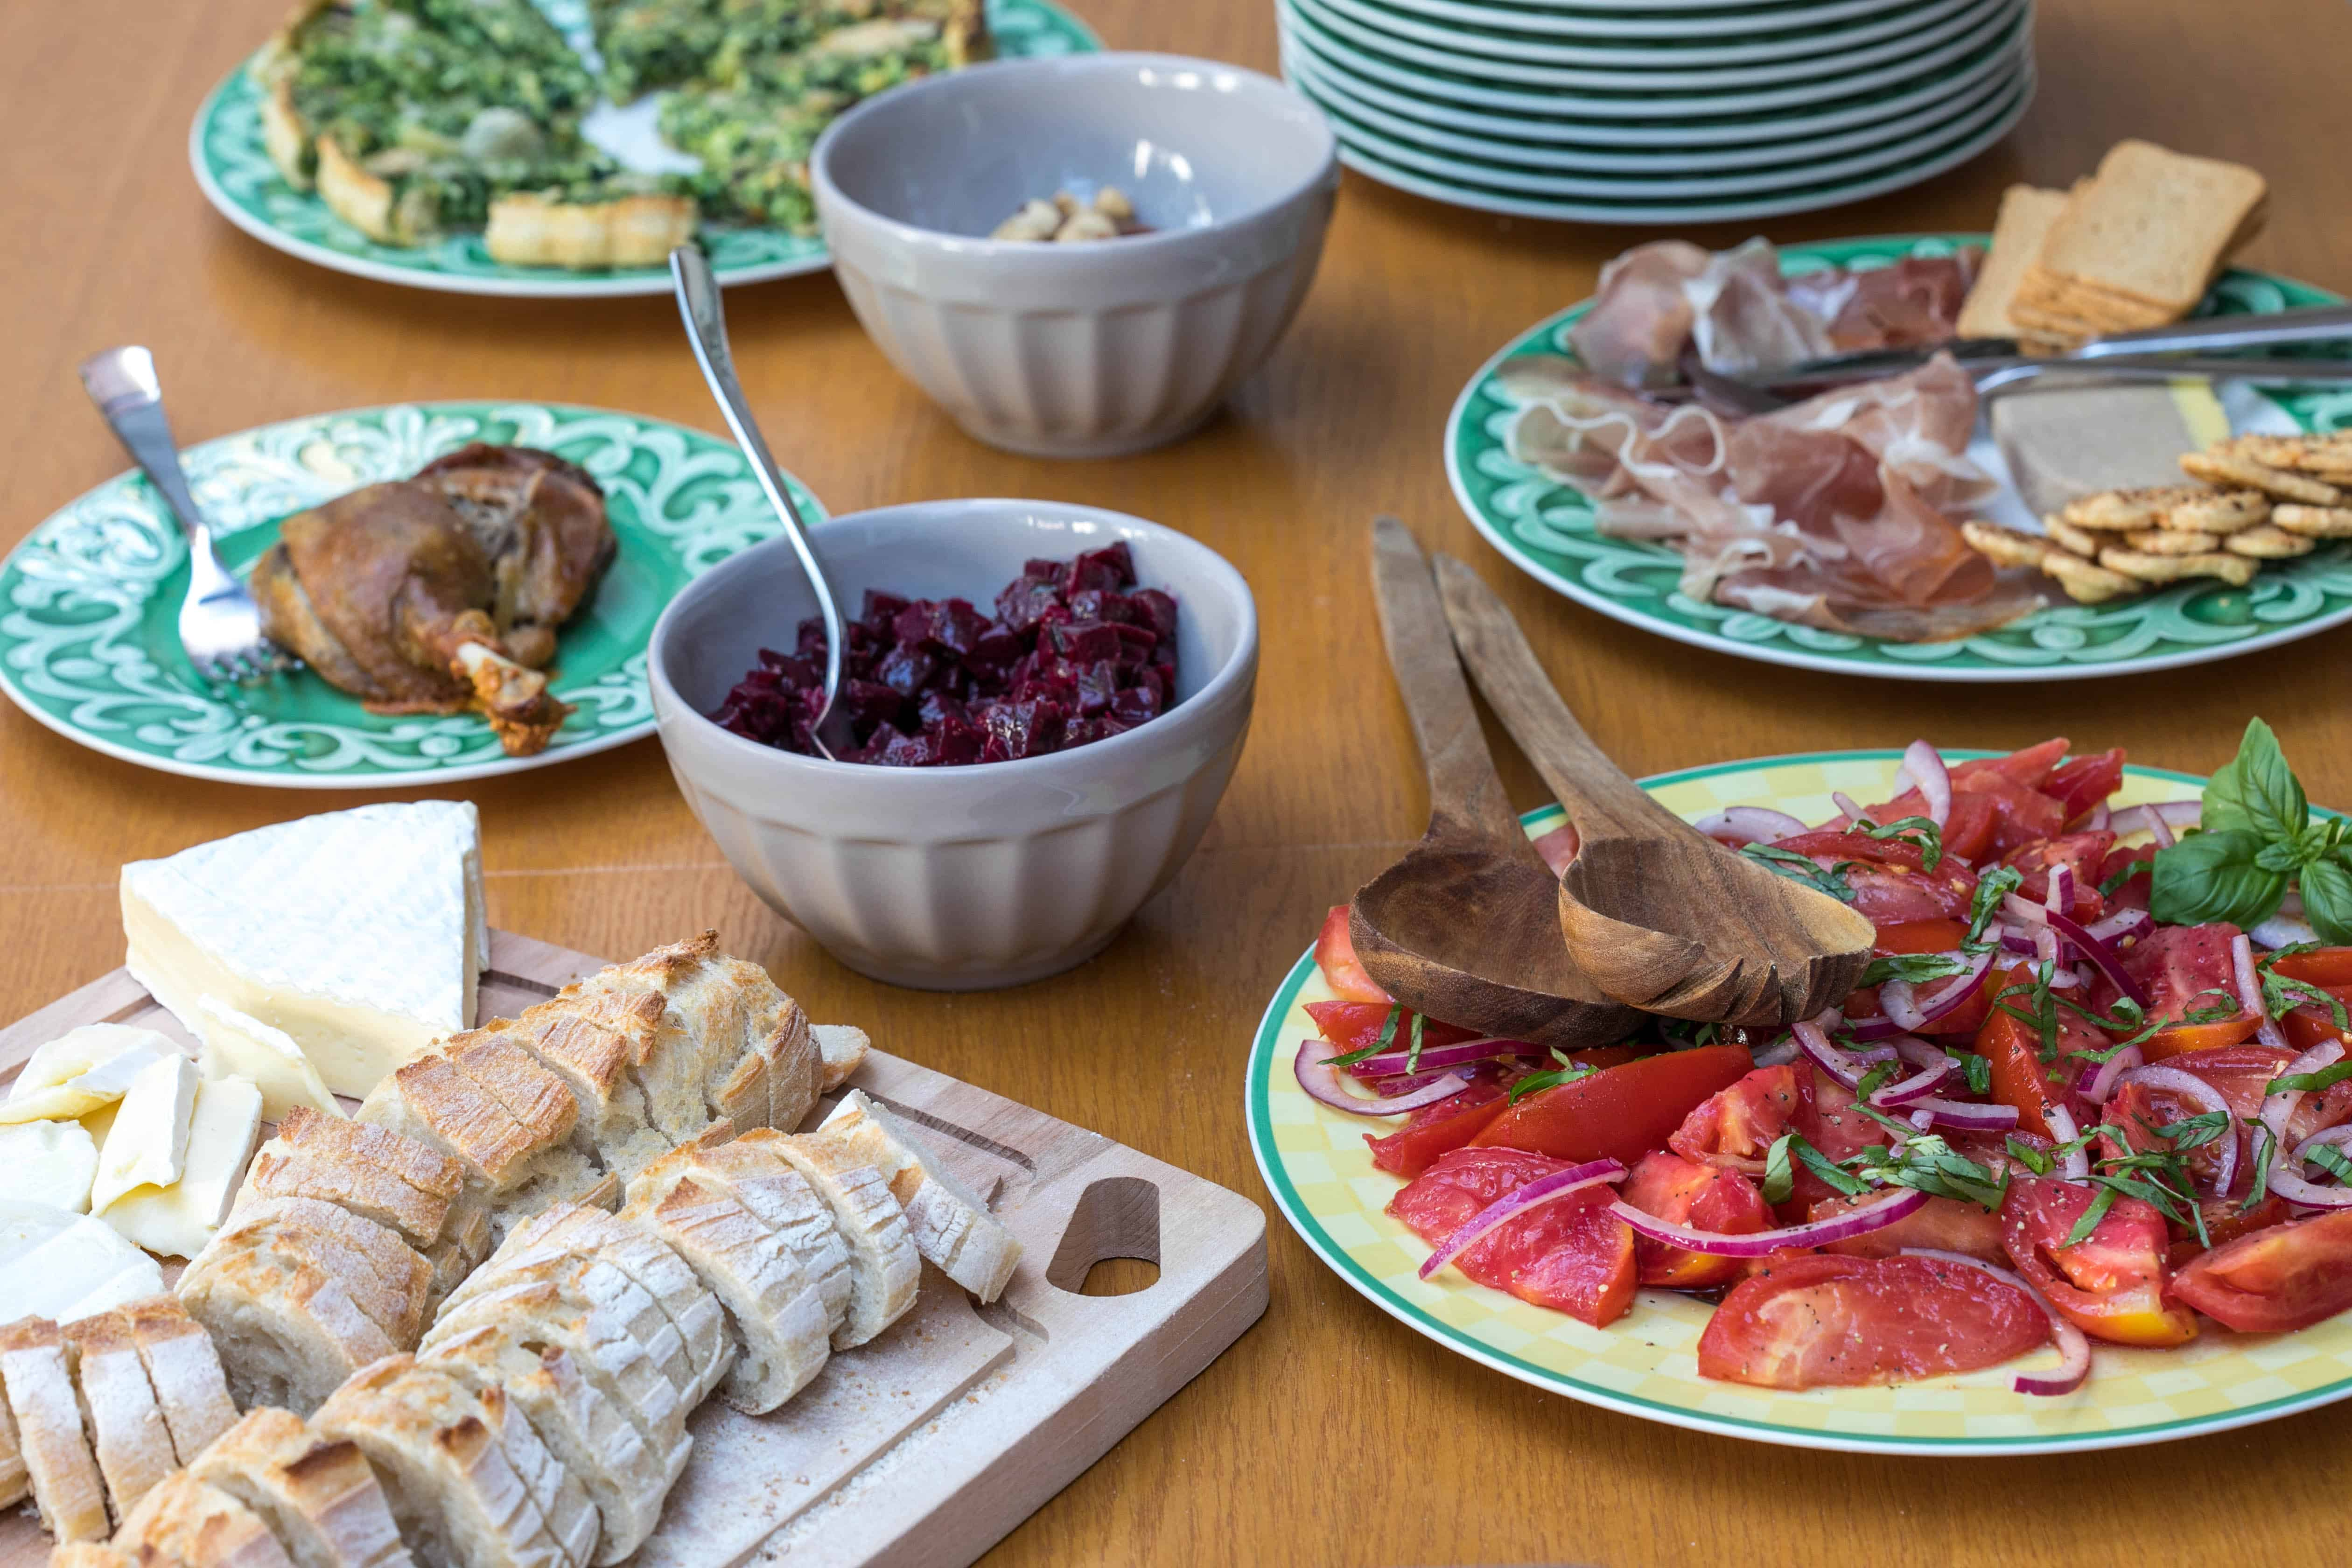 dinner spread with quiche, nuts, duck confit, beets, proscuitto, duck pate, cheese, baguette, and tomato salad